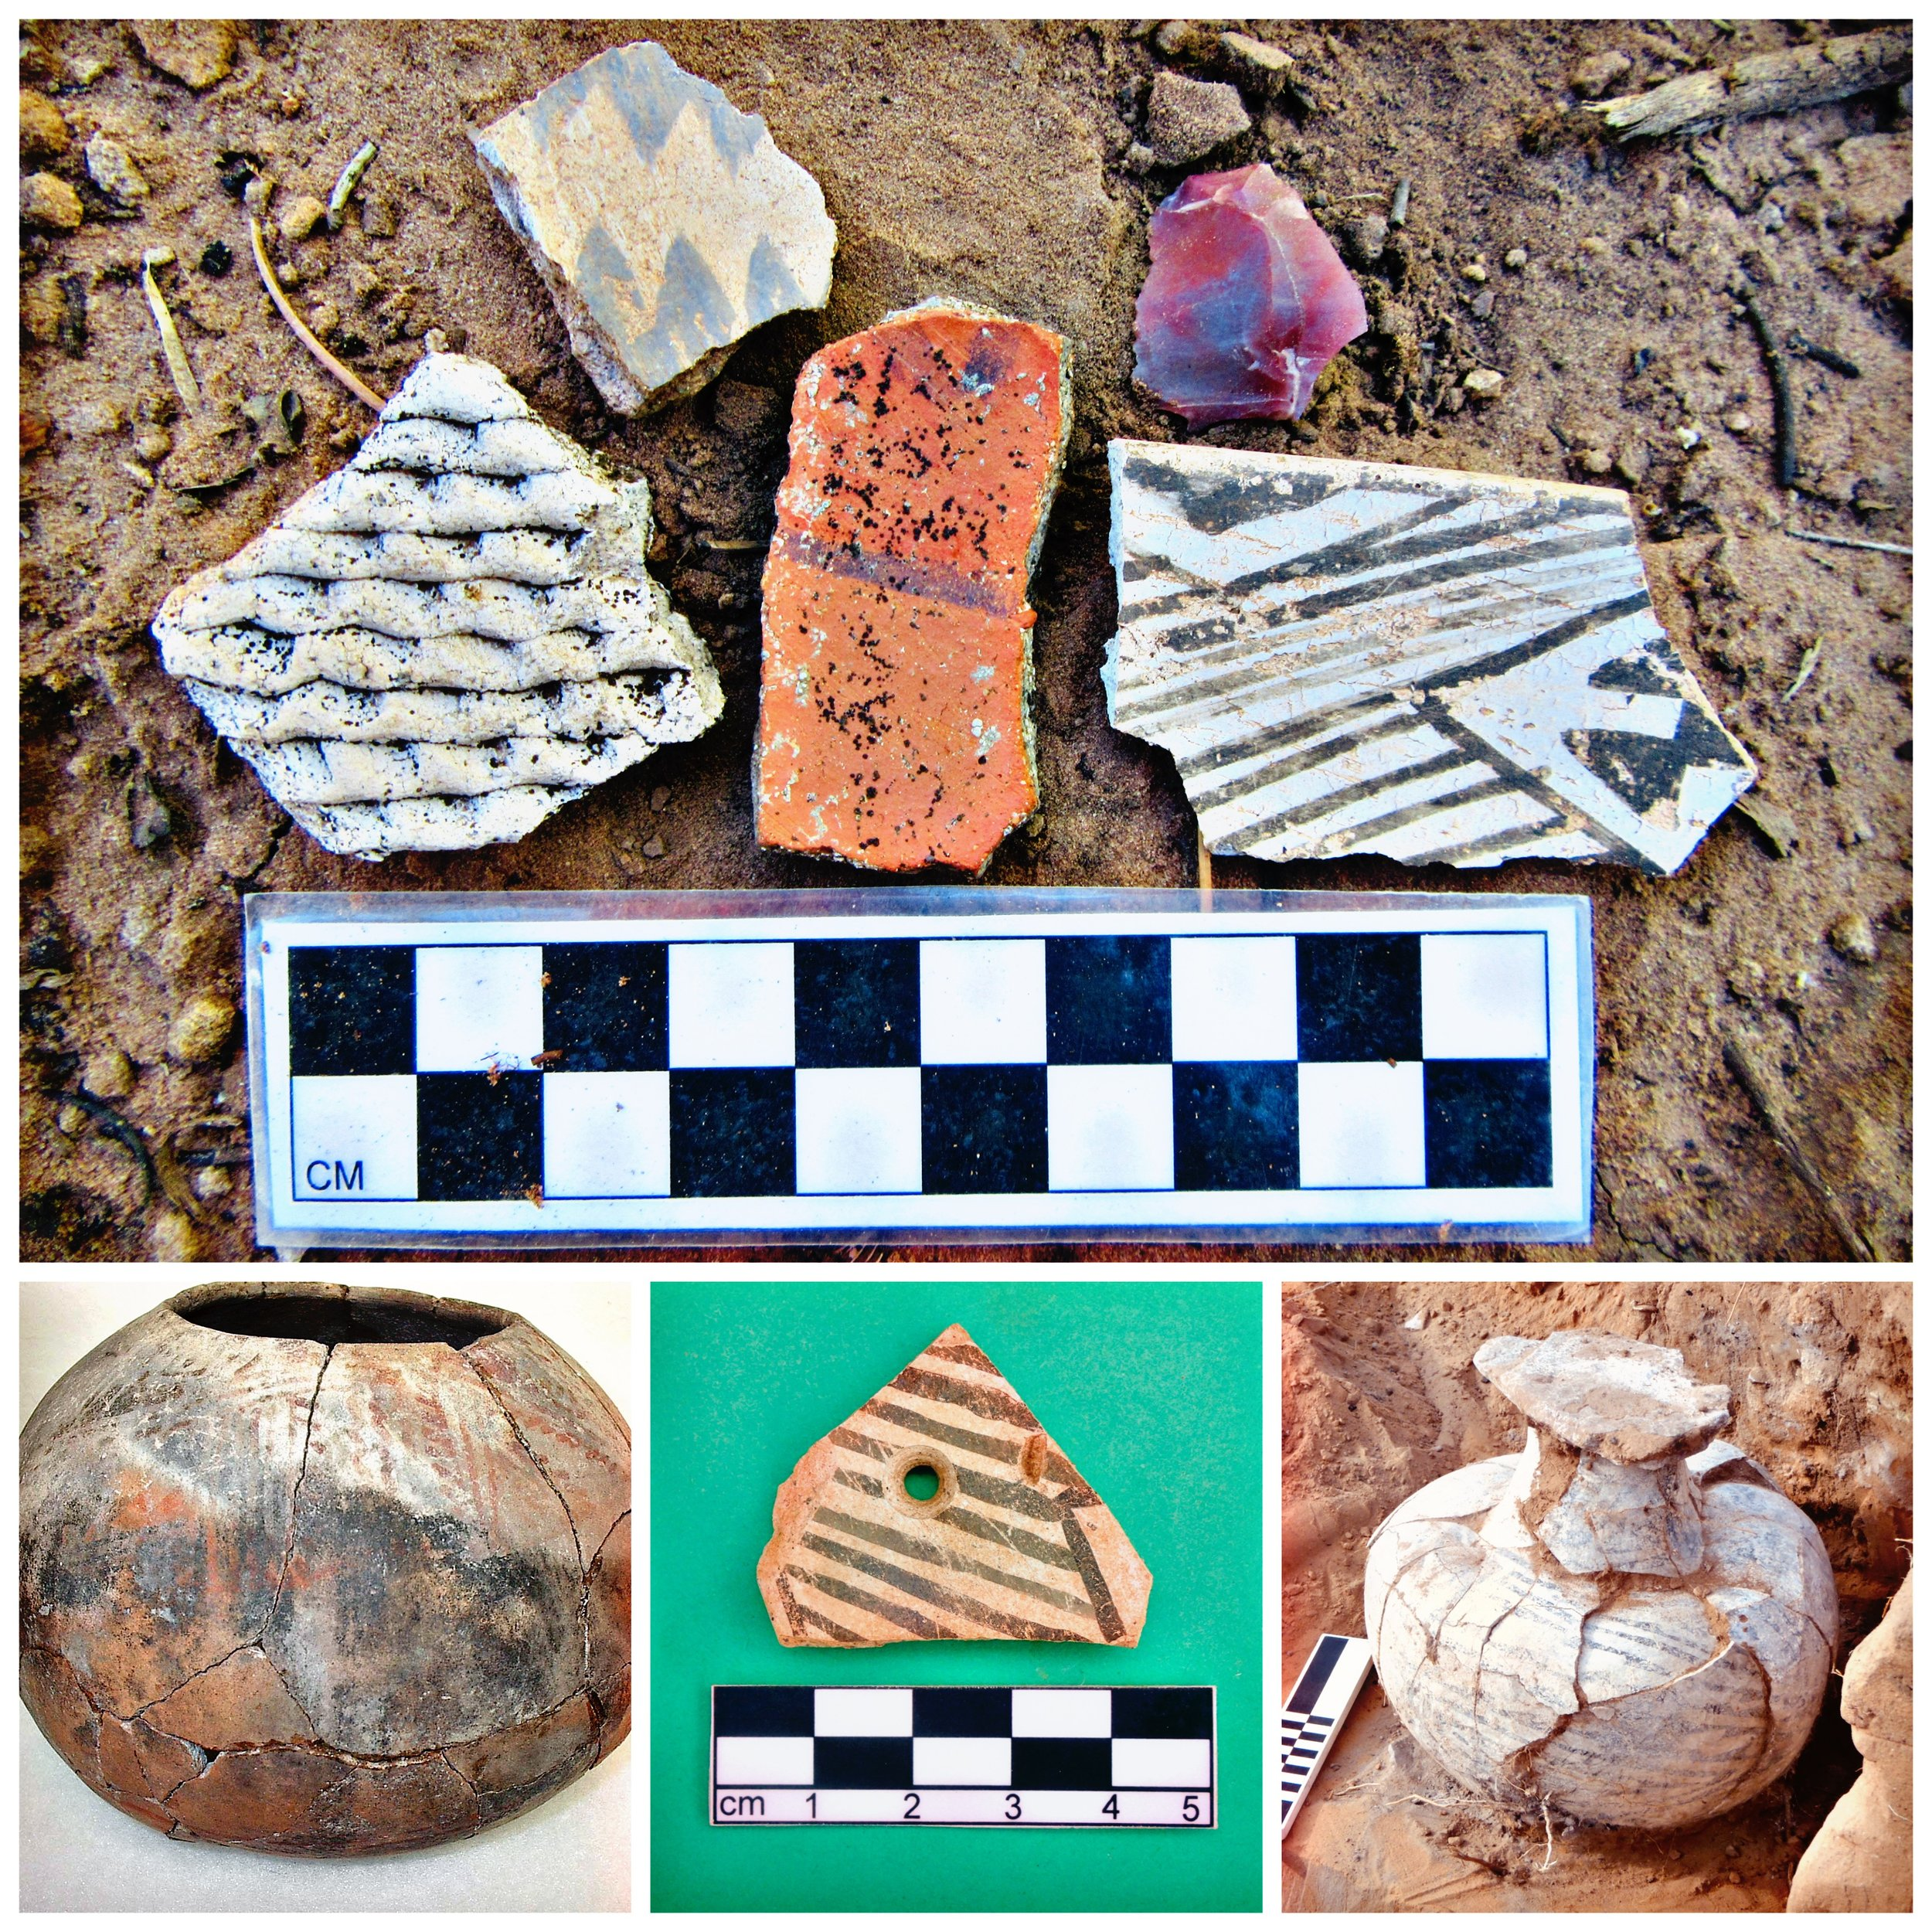 Ceramics… - are among the most valuable types of artifacts that archaeologists can find and are often used to determine when sites were occupied.